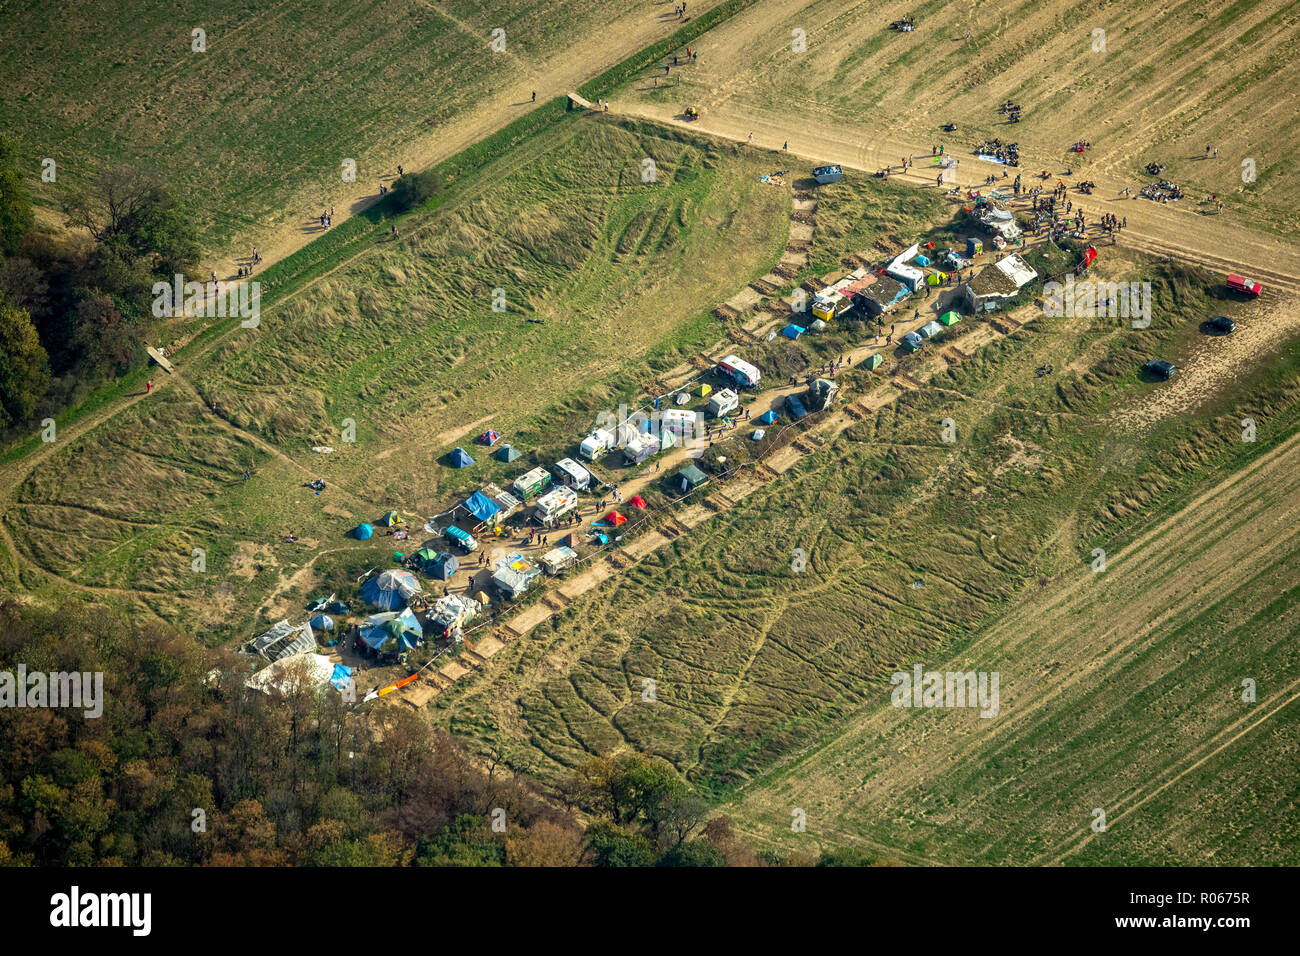 Aerial photo, tree occupants, caravan camp of the environmental activists, large demonstration against the clearing of the Hambacher forest, Hambach,  - Stock Image